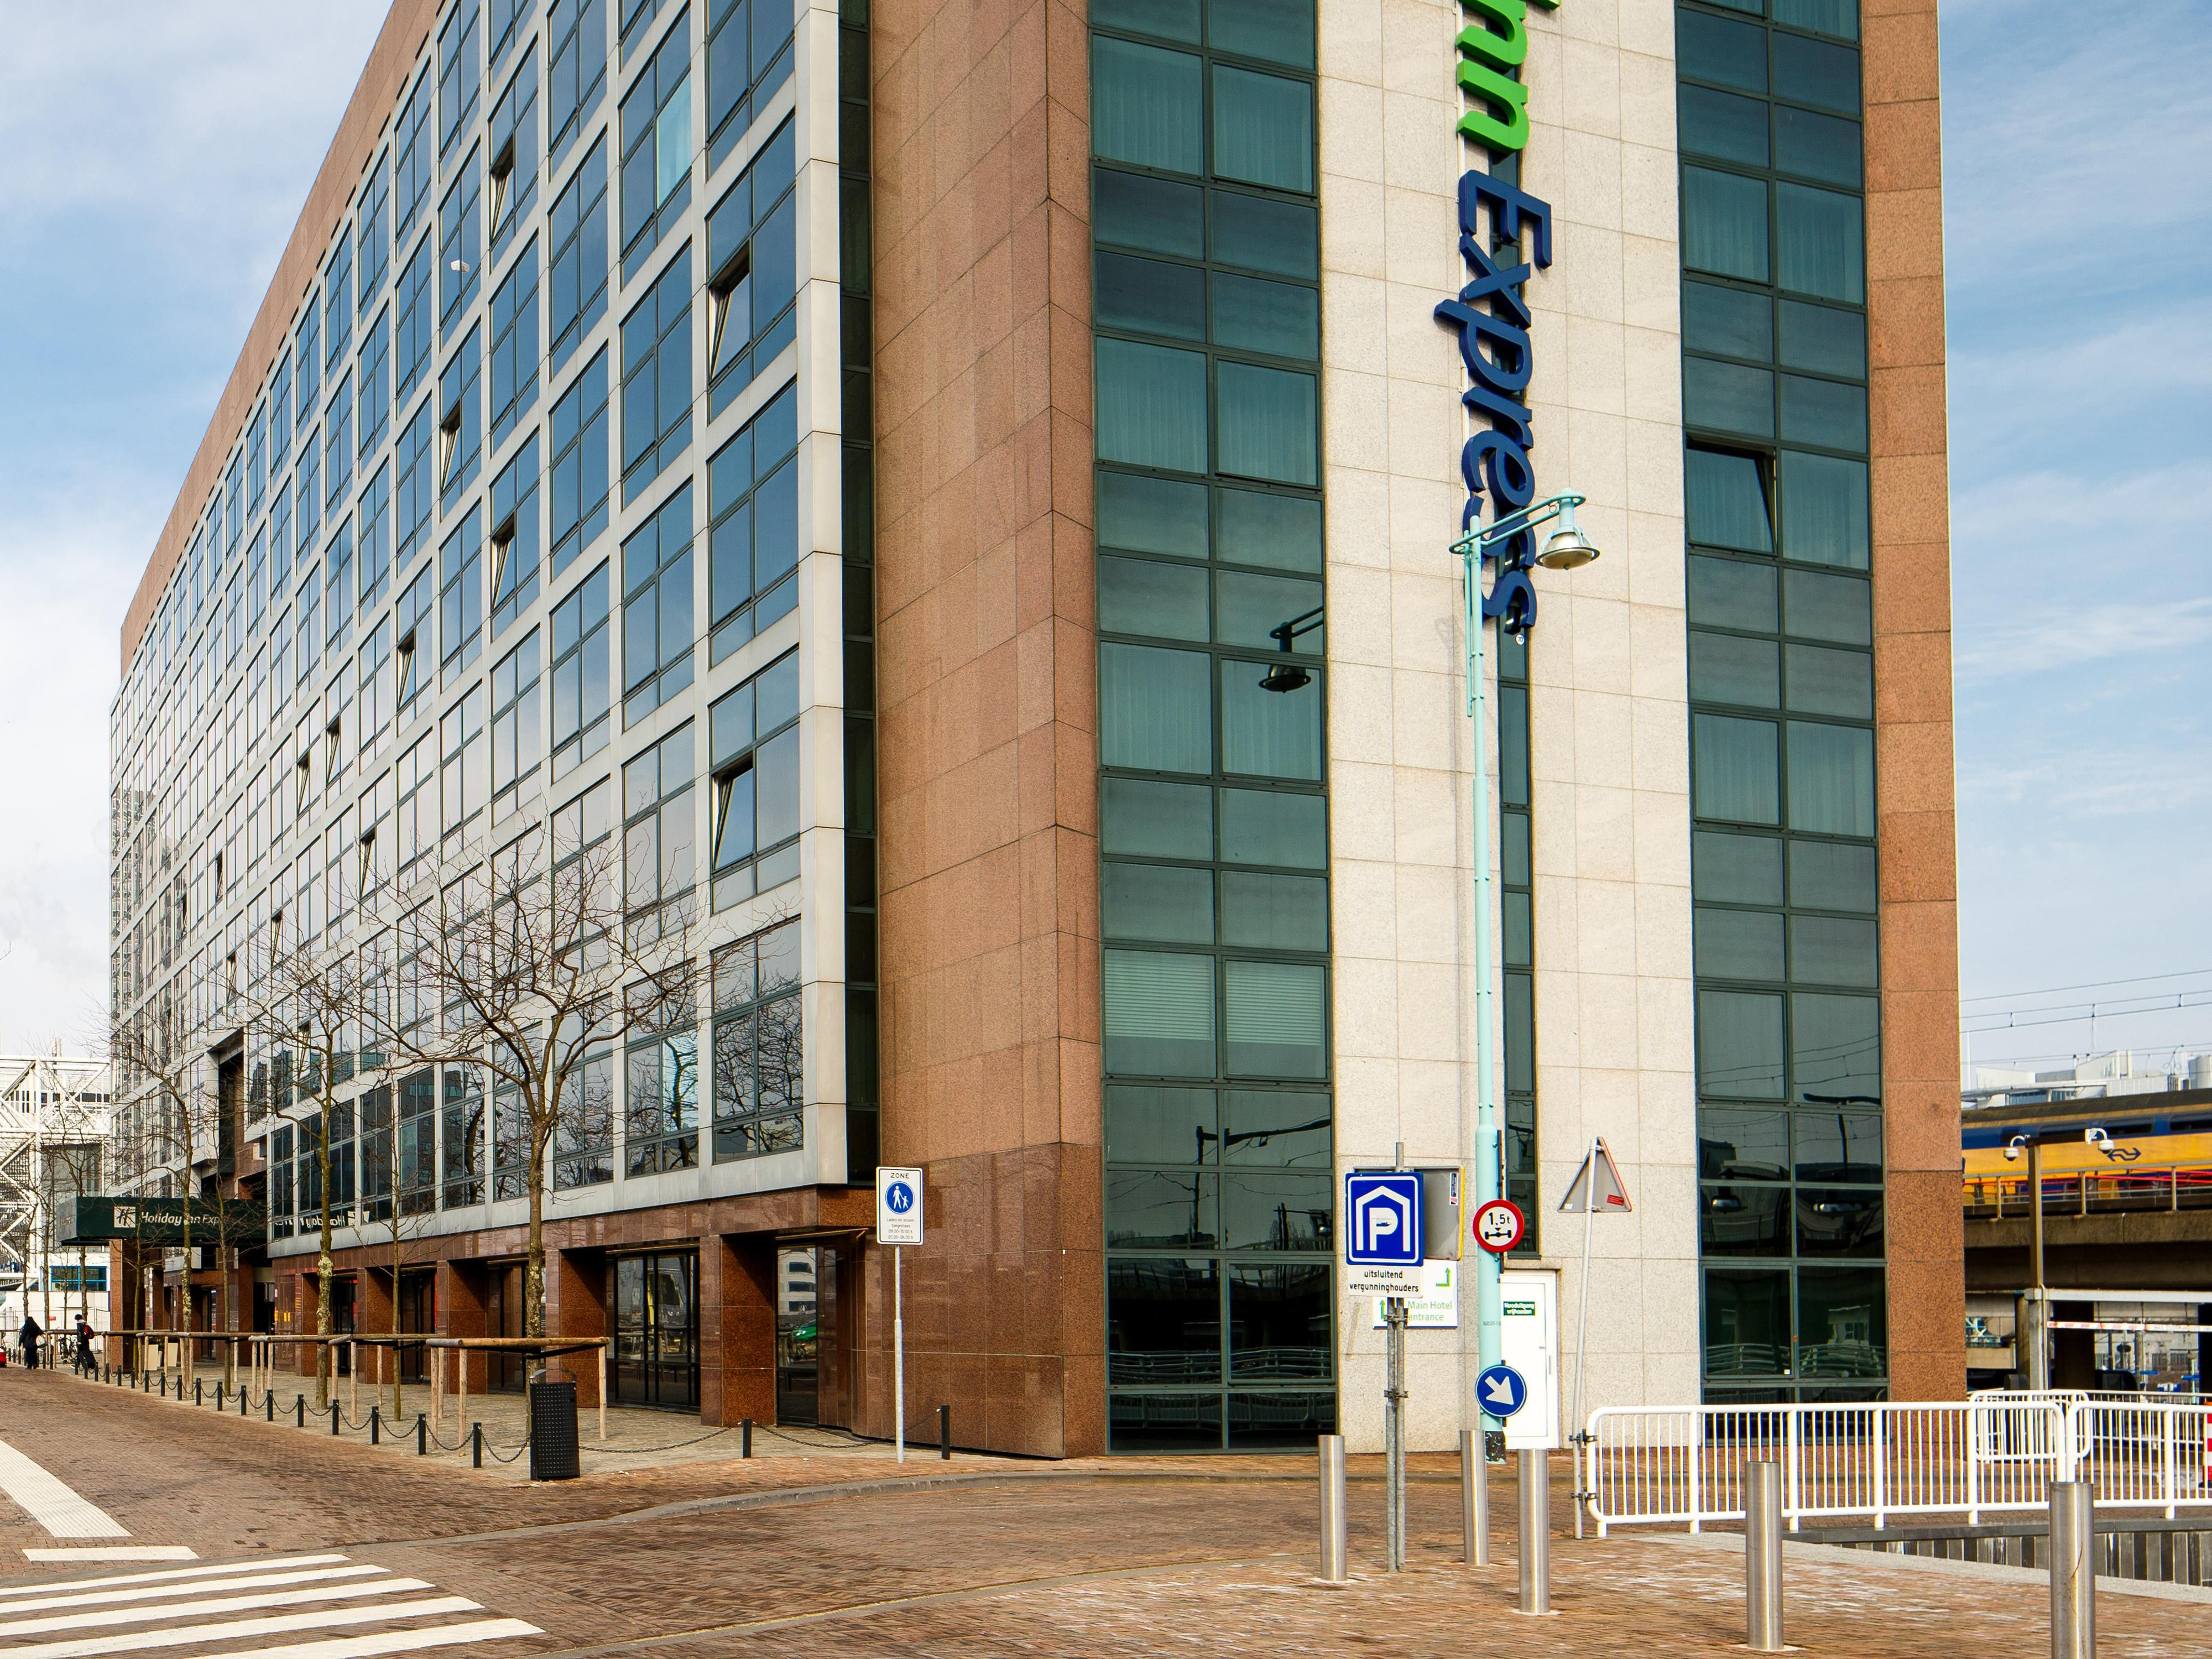 Exterior view of our hotel near Amsterdam Sloterdijk Station